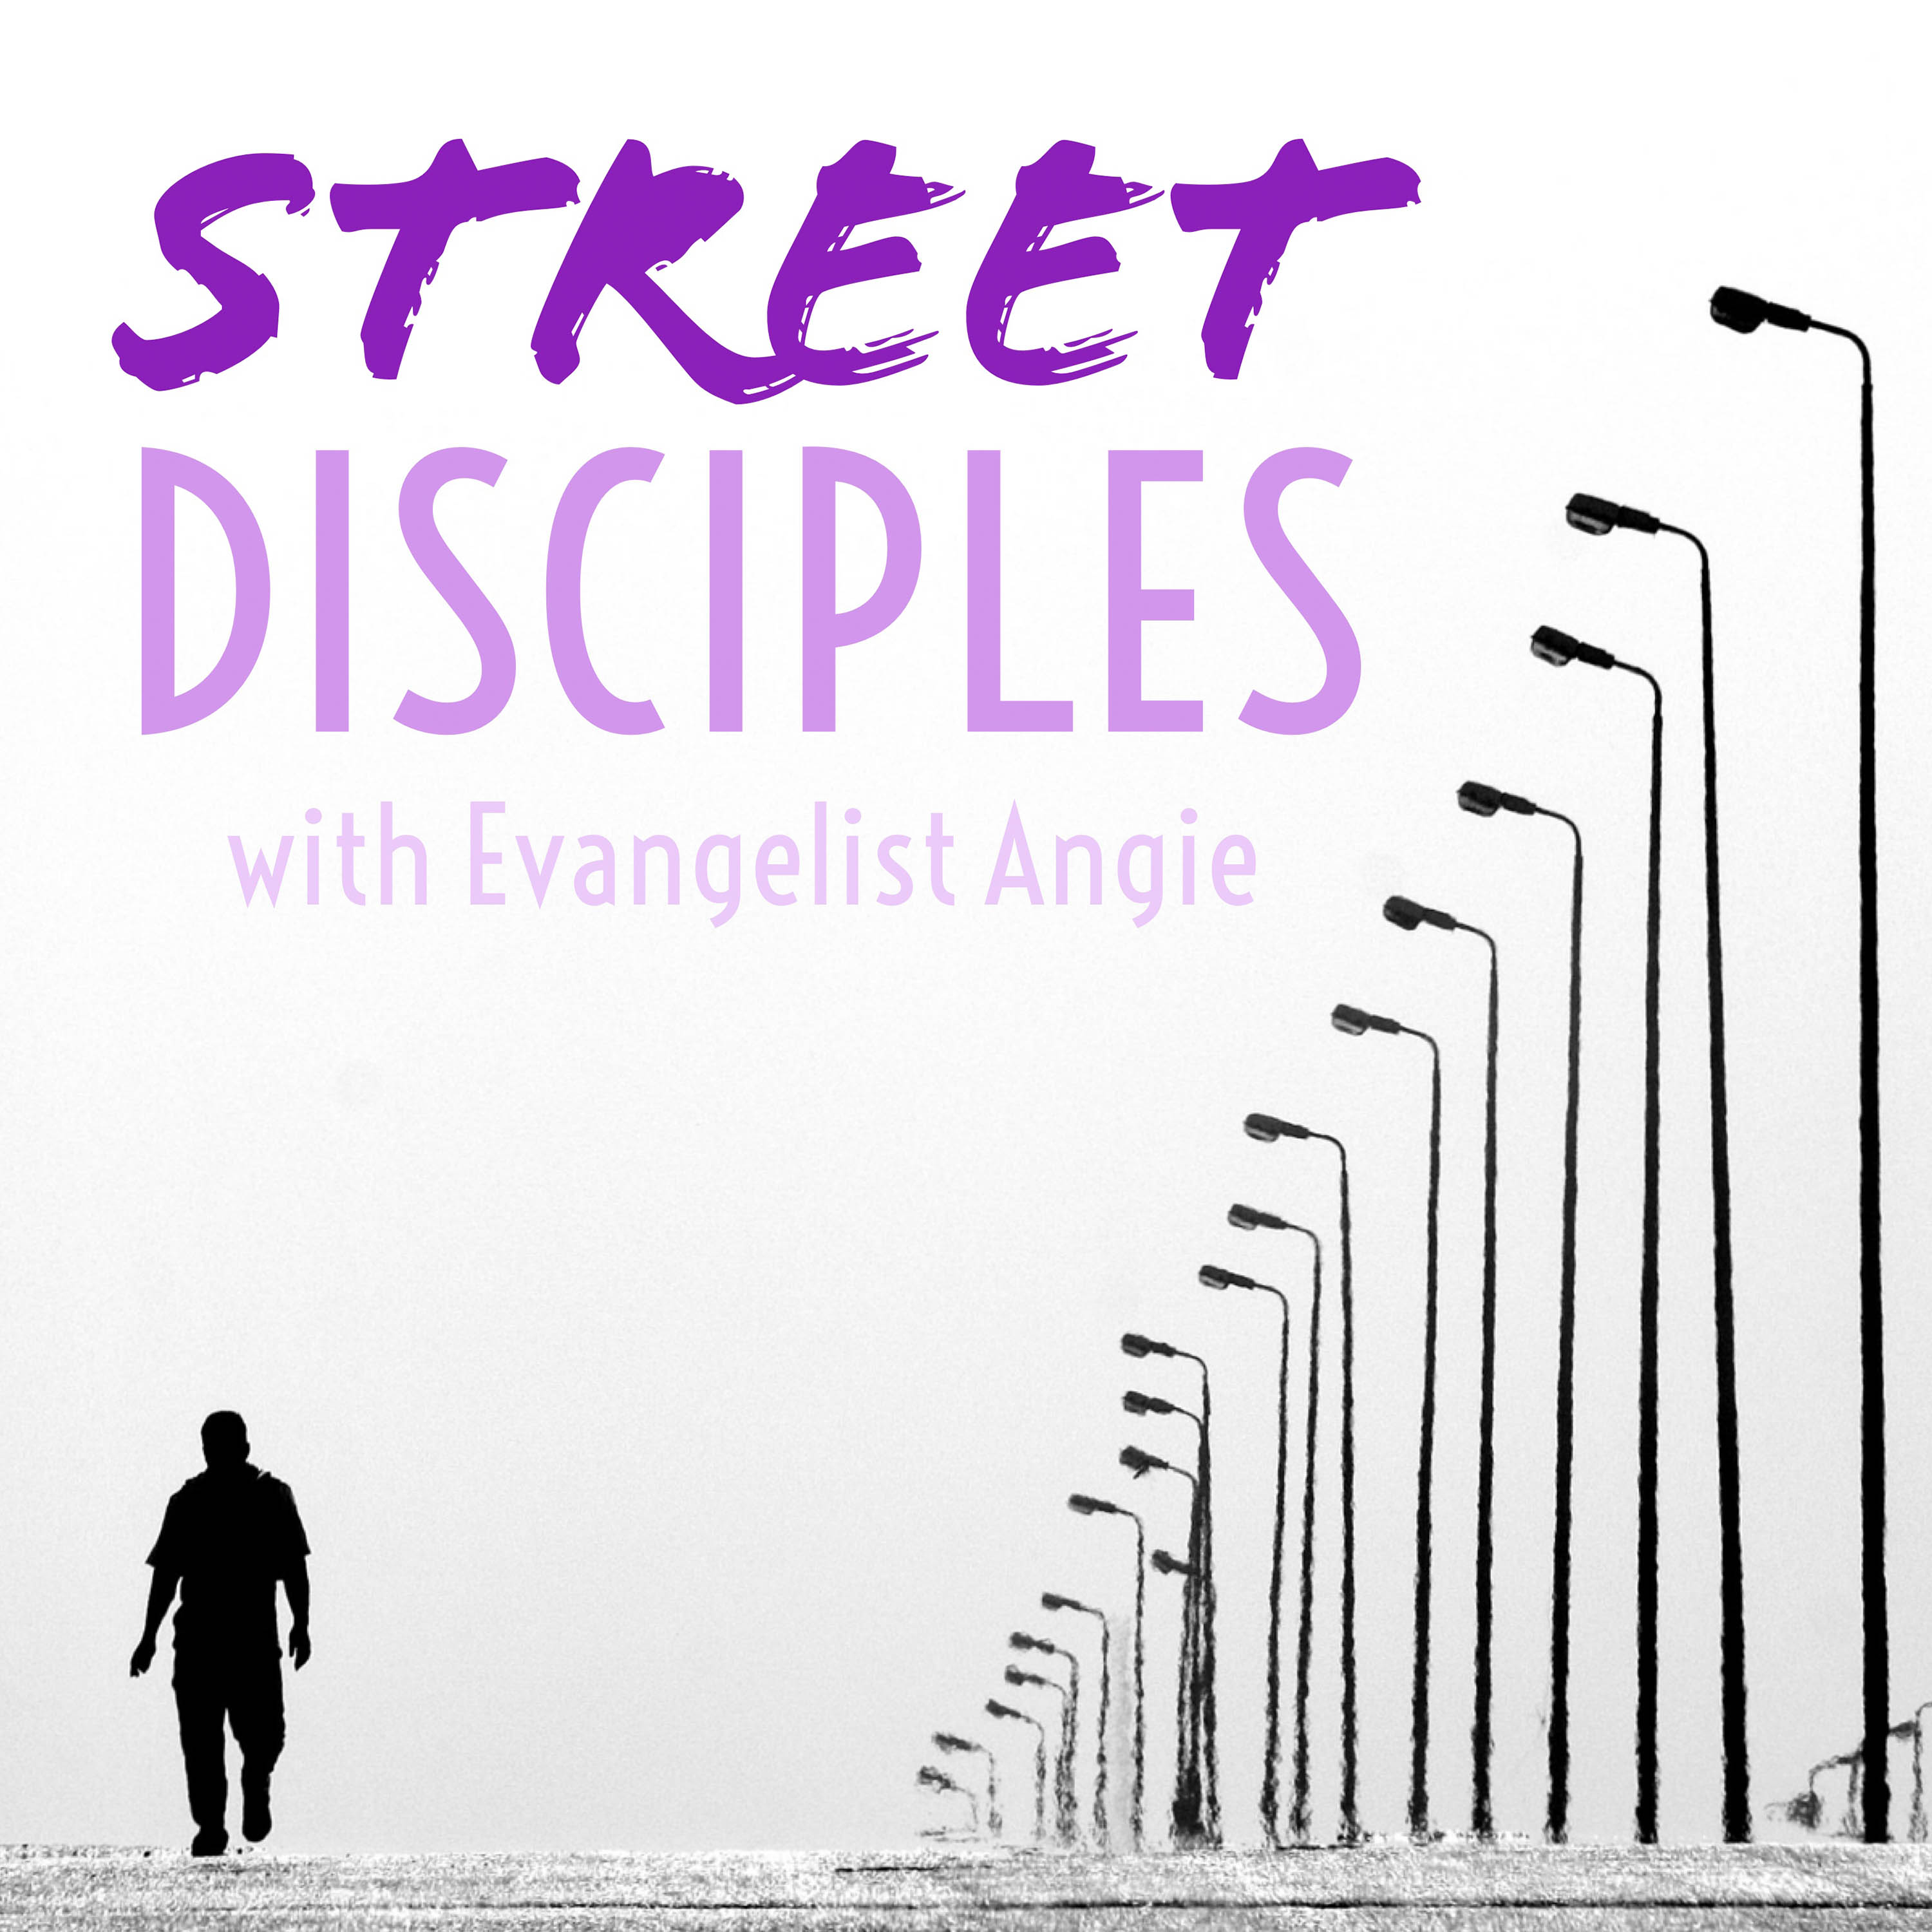 podcast cover - street disciples